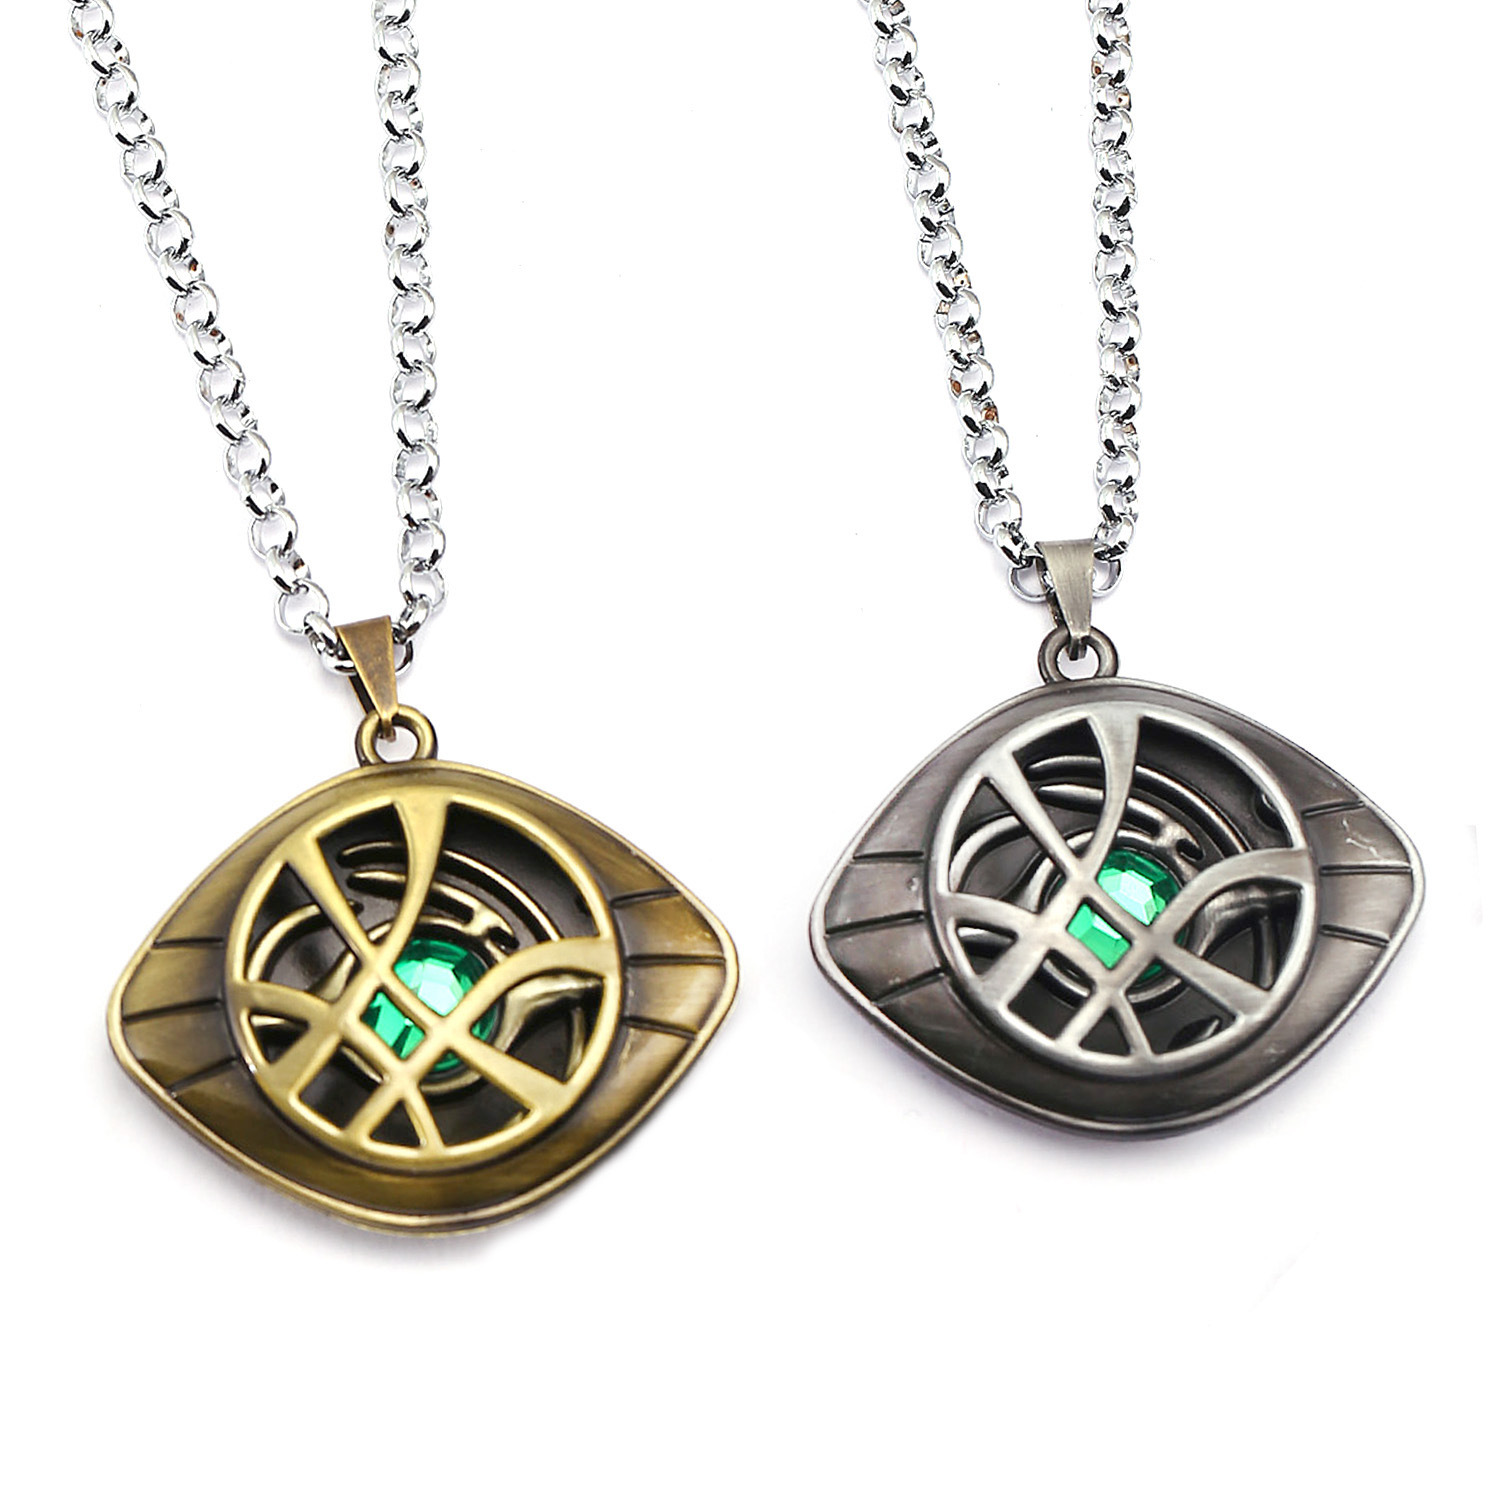 Marvel Avengers Doctor Strange Infinity Time Stones Necklace Keychain Figure Model Toys